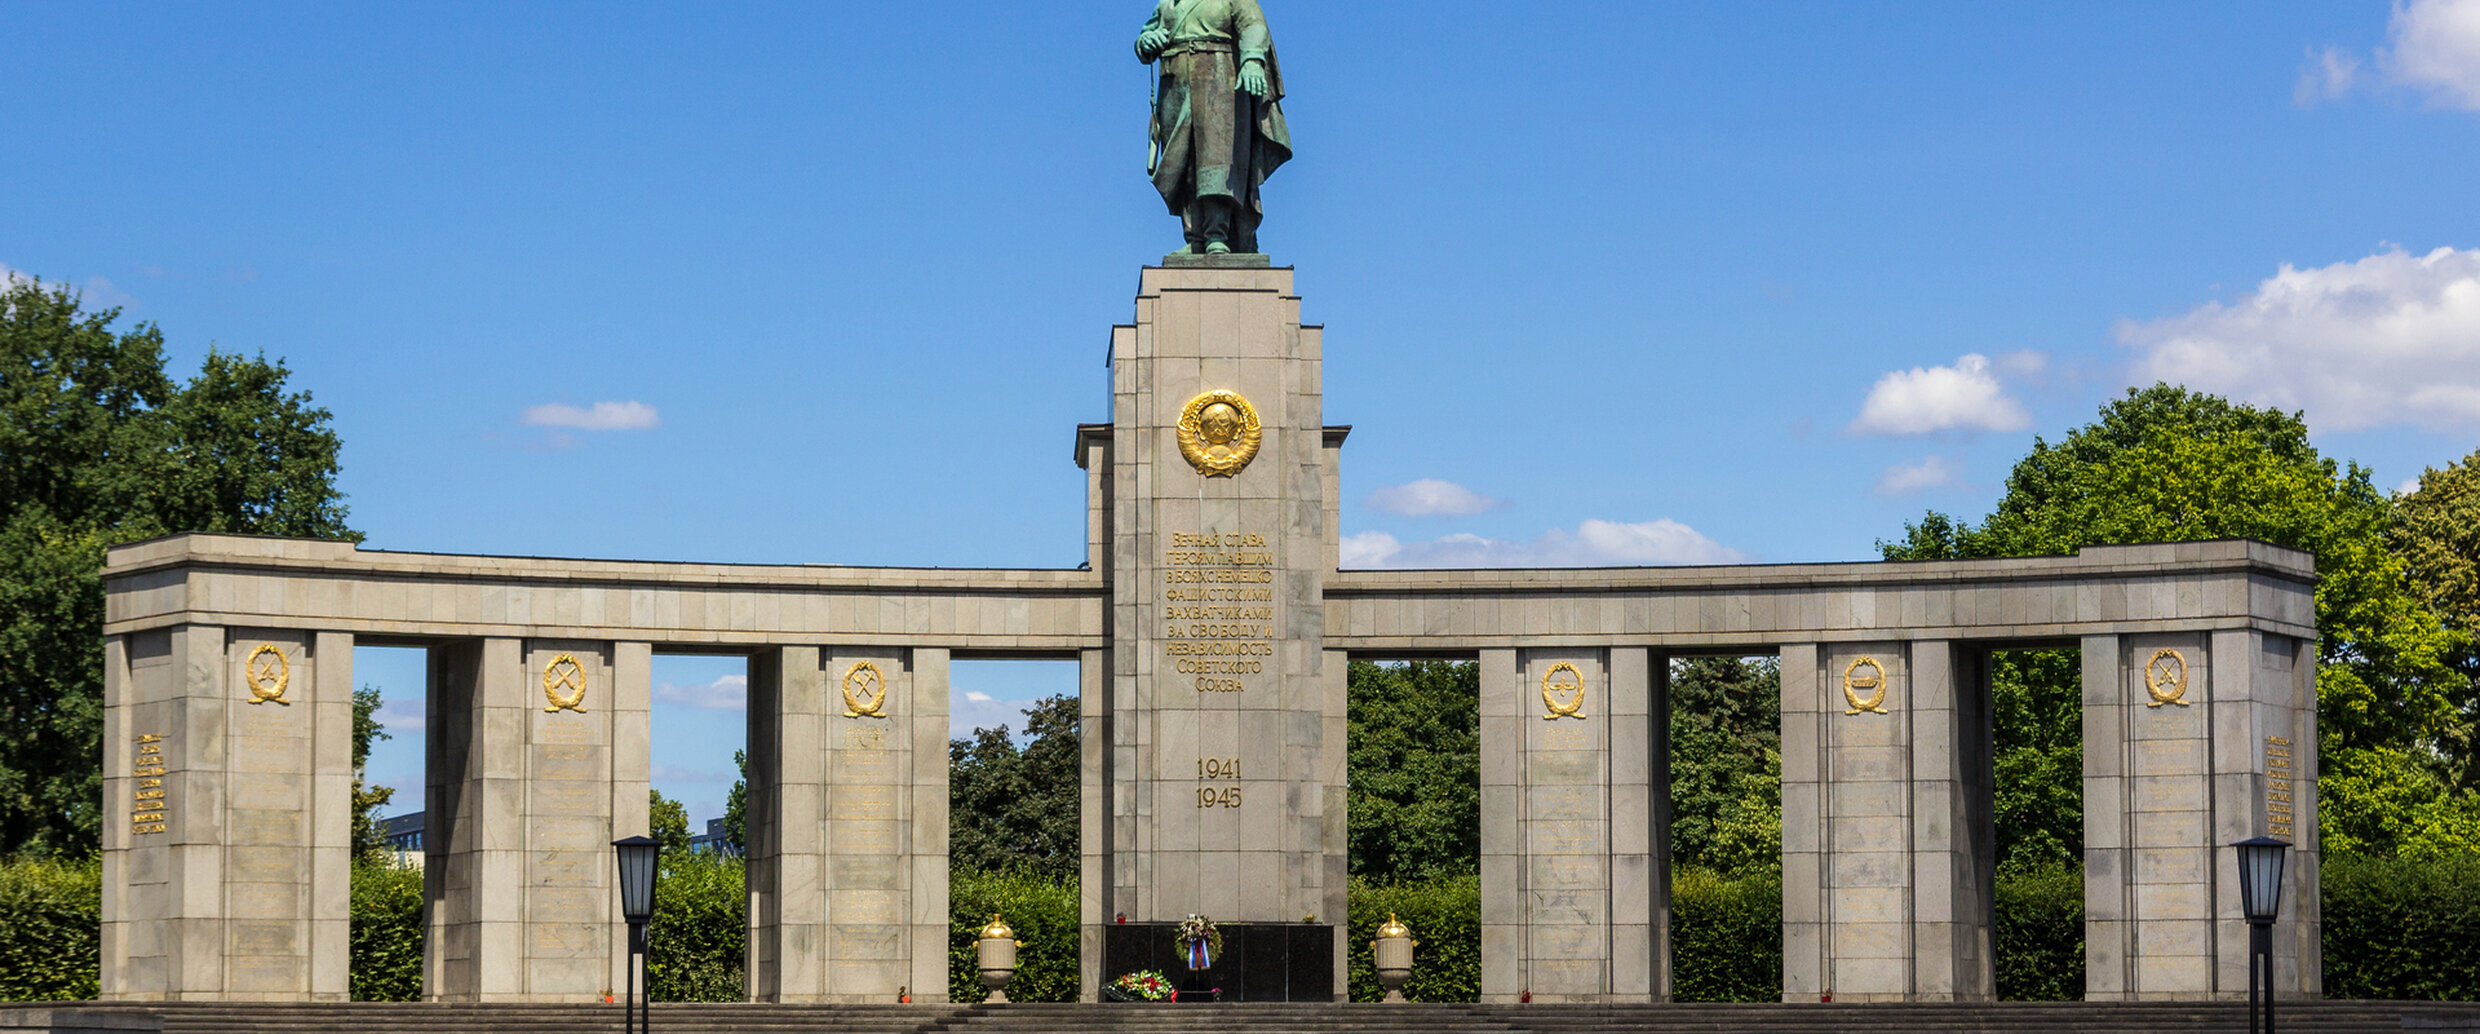 soviet memorial tiergarten. Black Bedroom Furniture Sets. Home Design Ideas